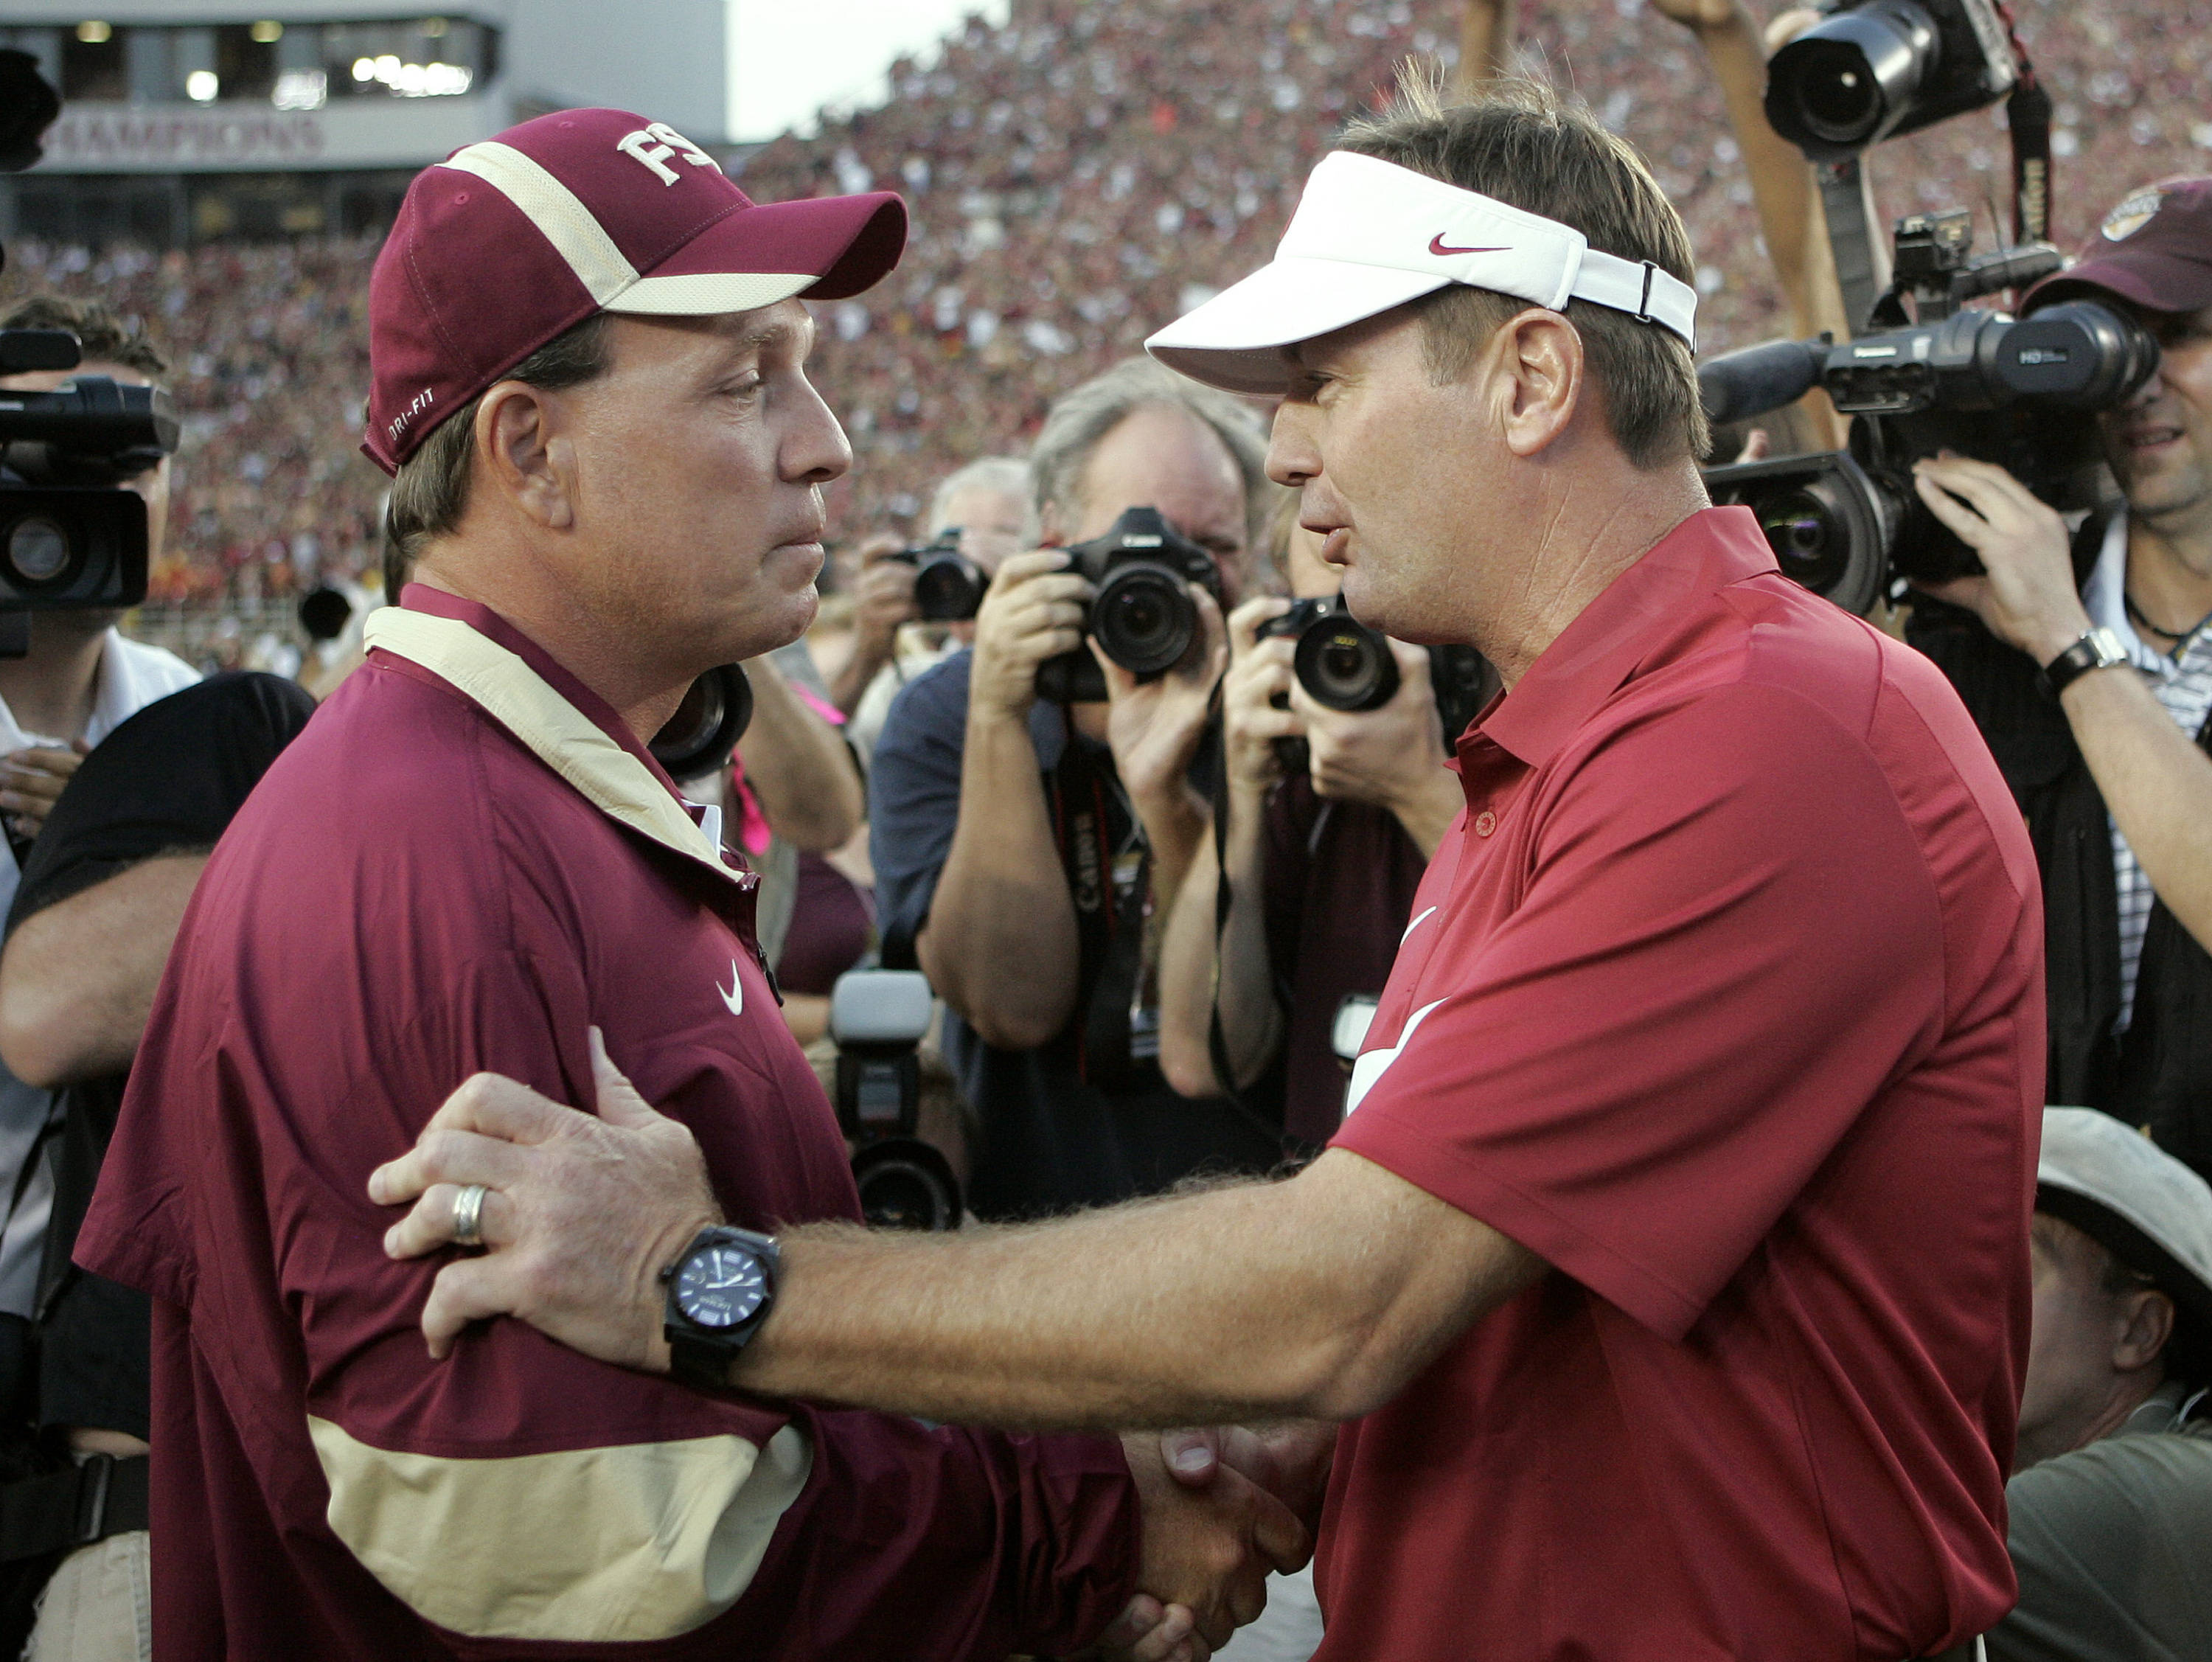 Oklahoma head coach Bob Stoops, right, talks to Florida State head coach Jim Fisher before the start of an NCAA college football game, Saturday, Sept. 17, 2011, in Tallahassee, Fla. (AP Photo/Steve Cannon)